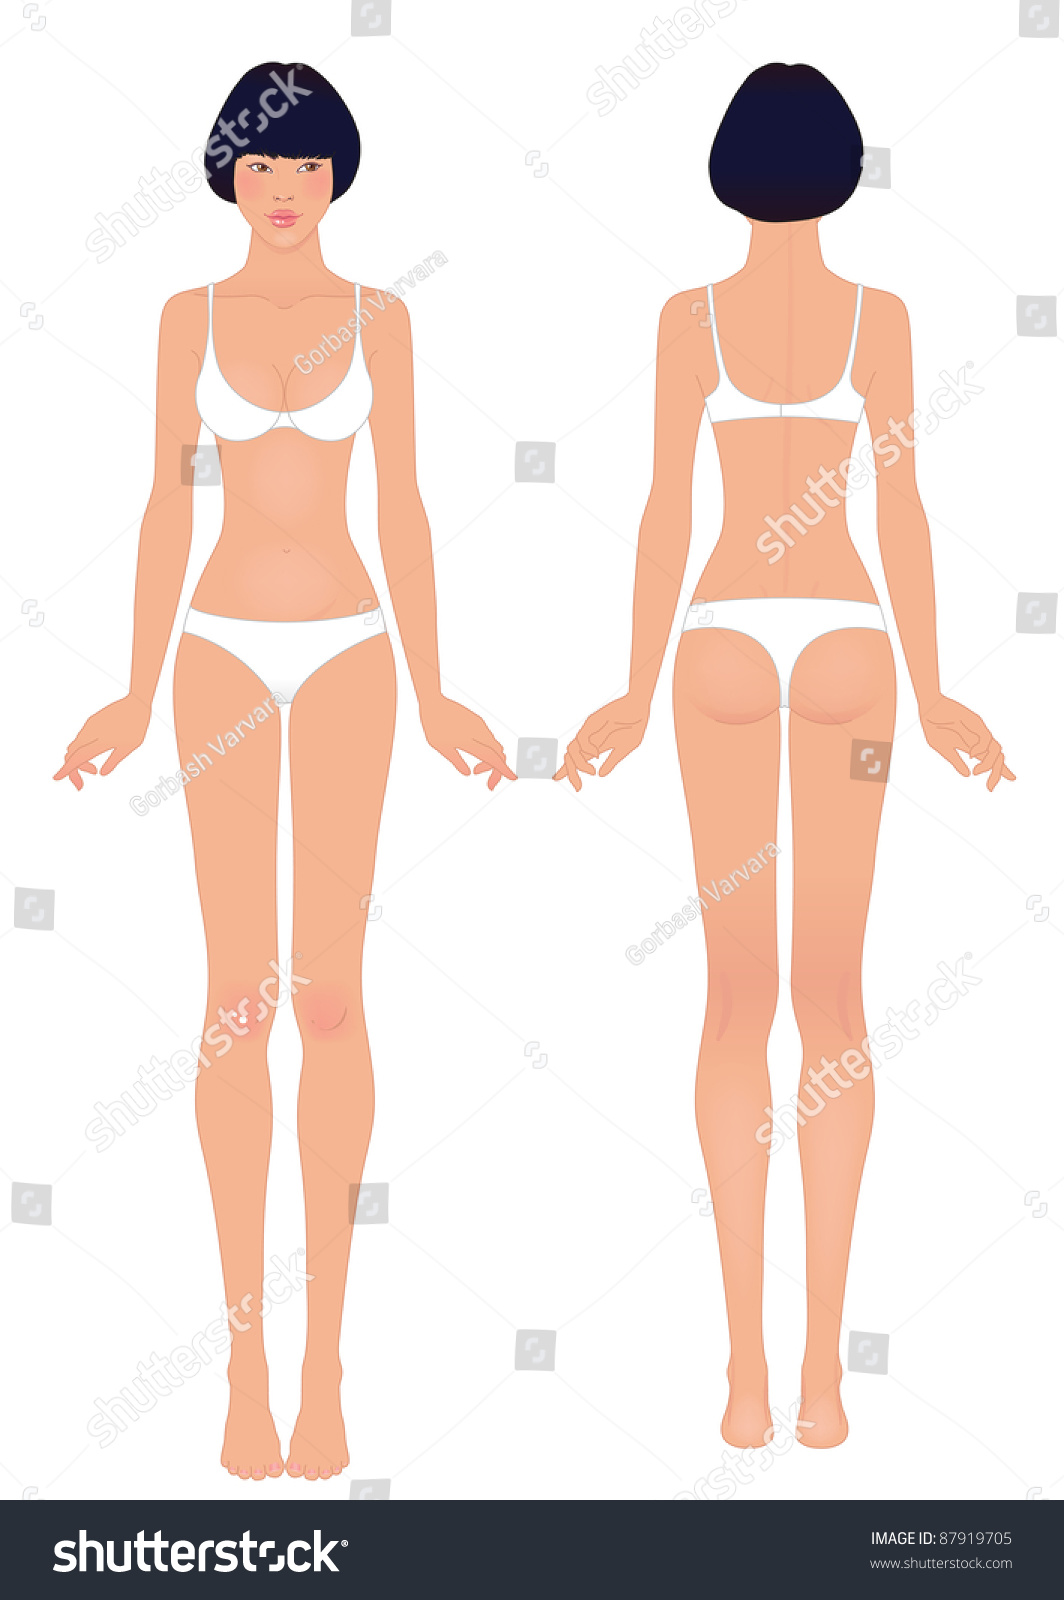 essays on womens body image Media influence of body image - custom sociology essay sample buy creative sociology writing essays and papers at writingleader for cheap and fair price.